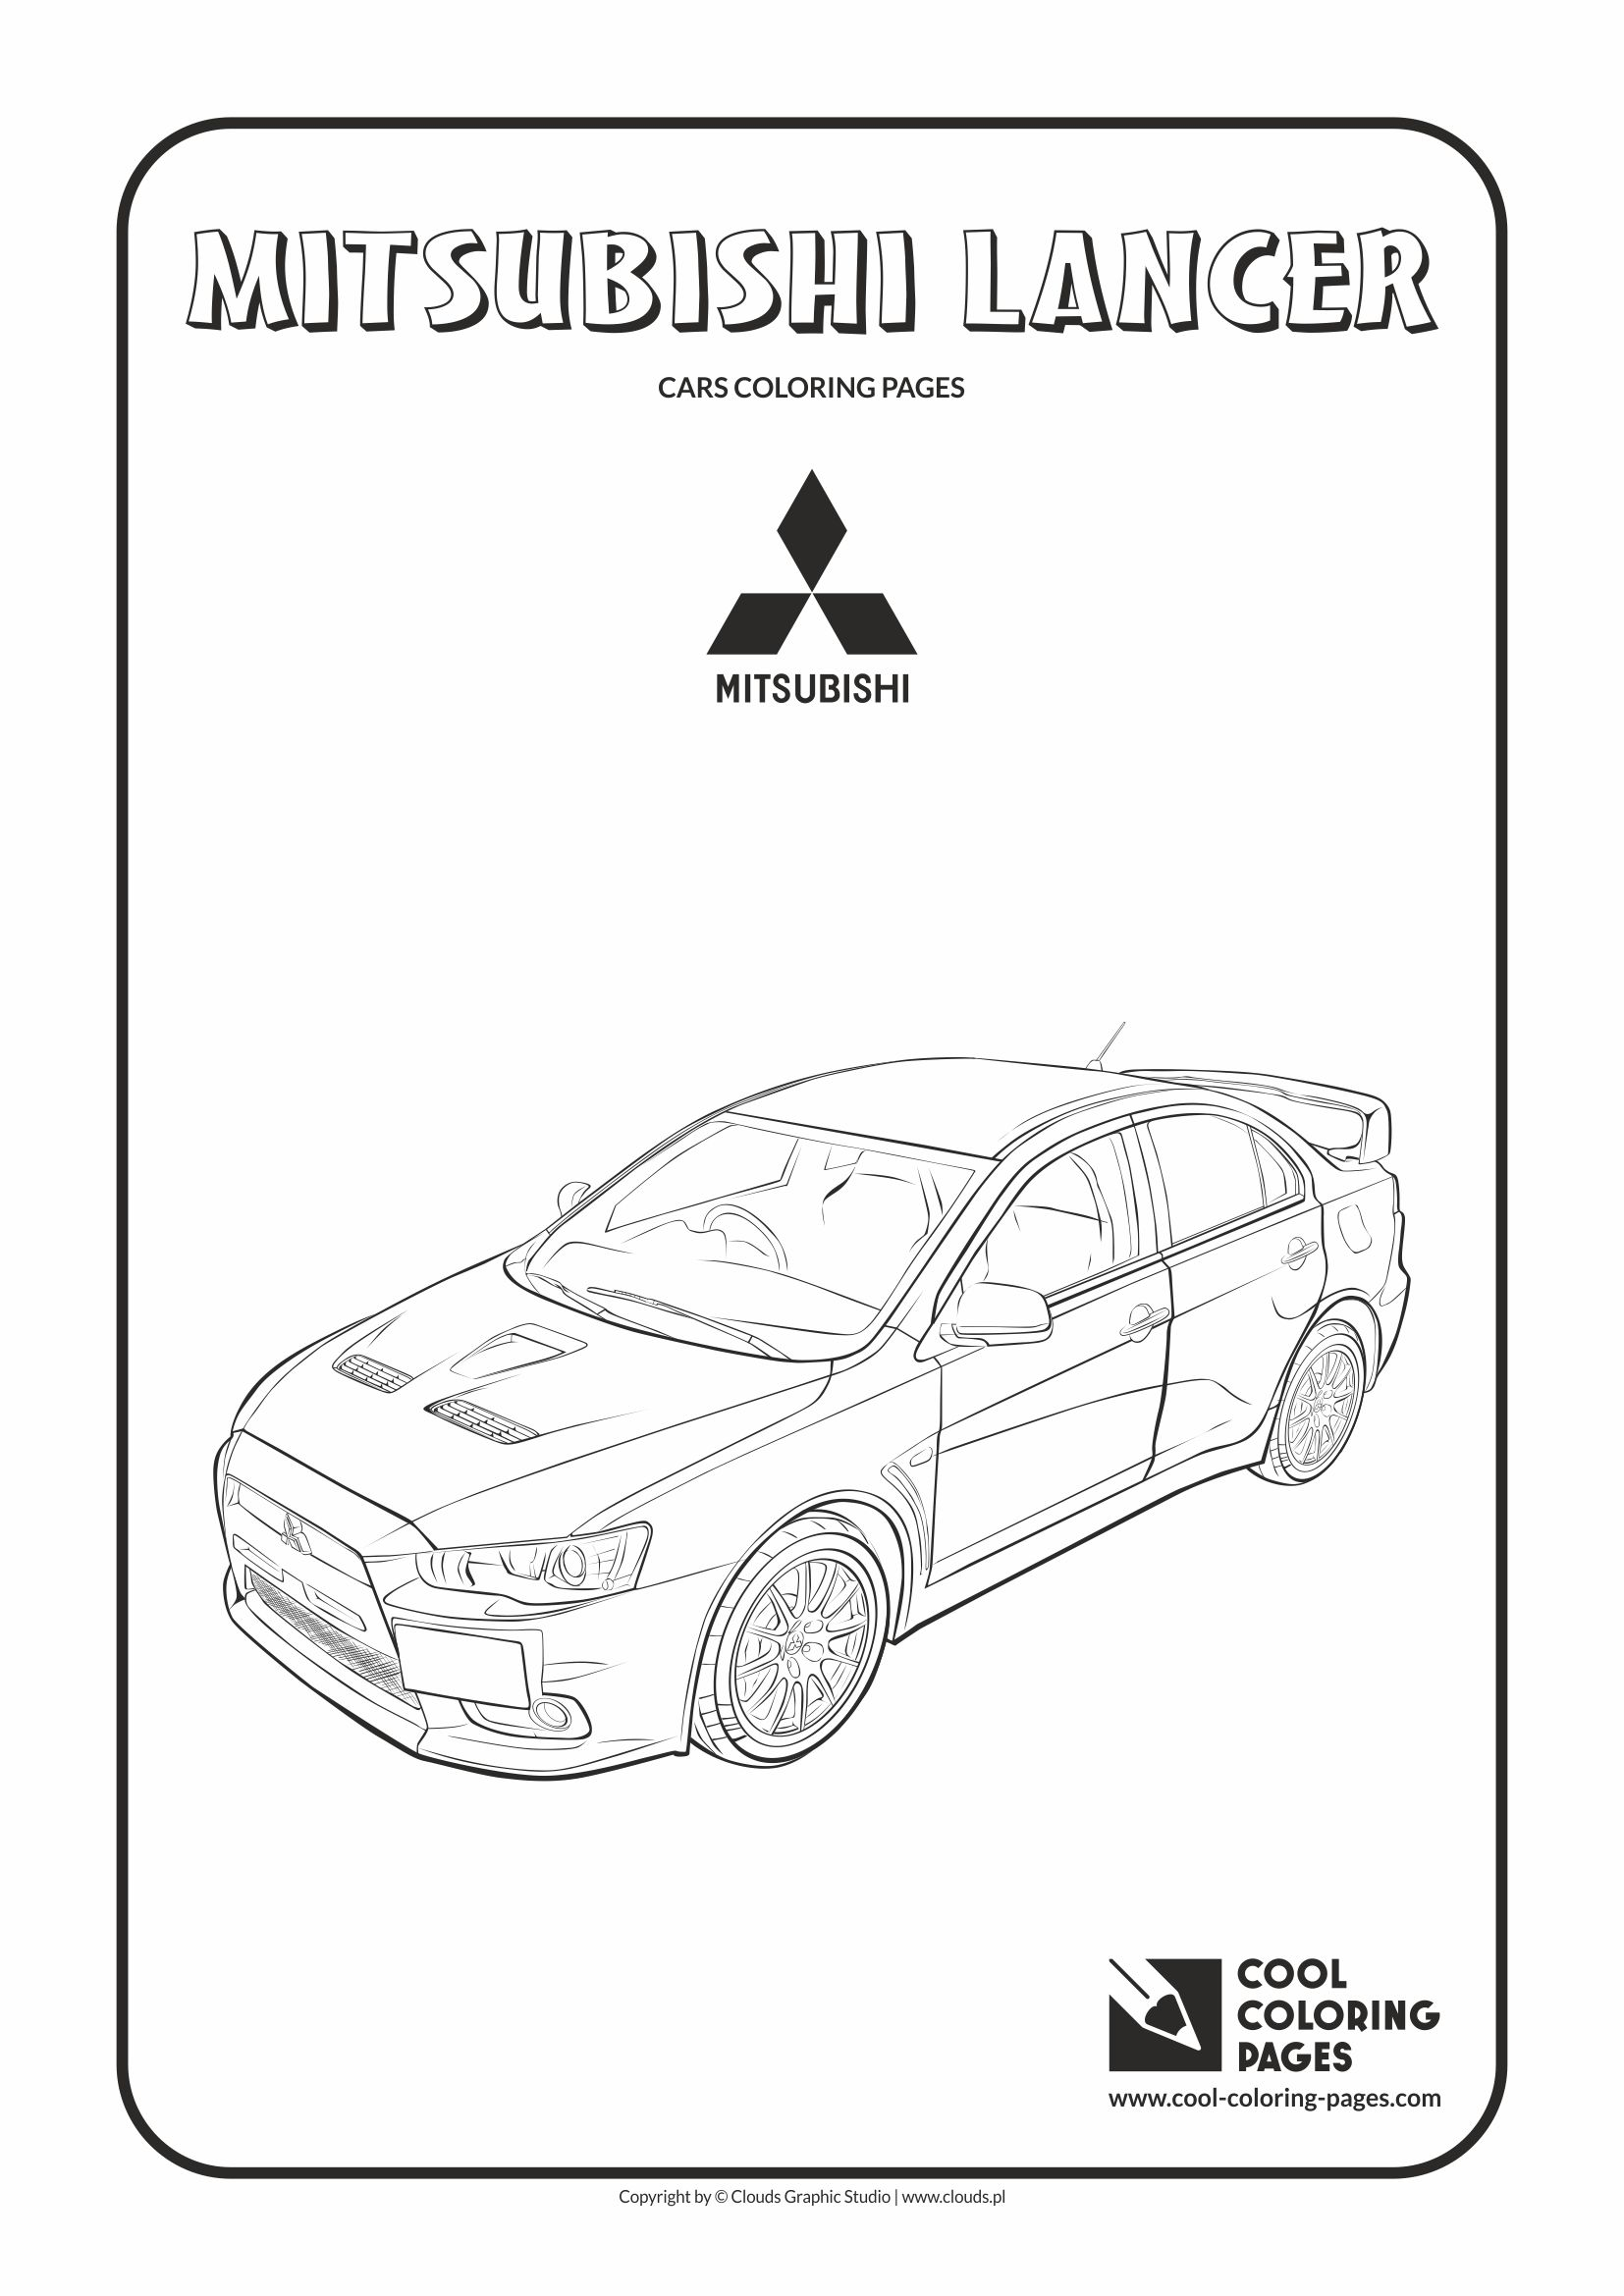 Cool Coloring Pages - Vehicles / Mitsubishi Lancer / Coloring page with Mitsubishi Lancer